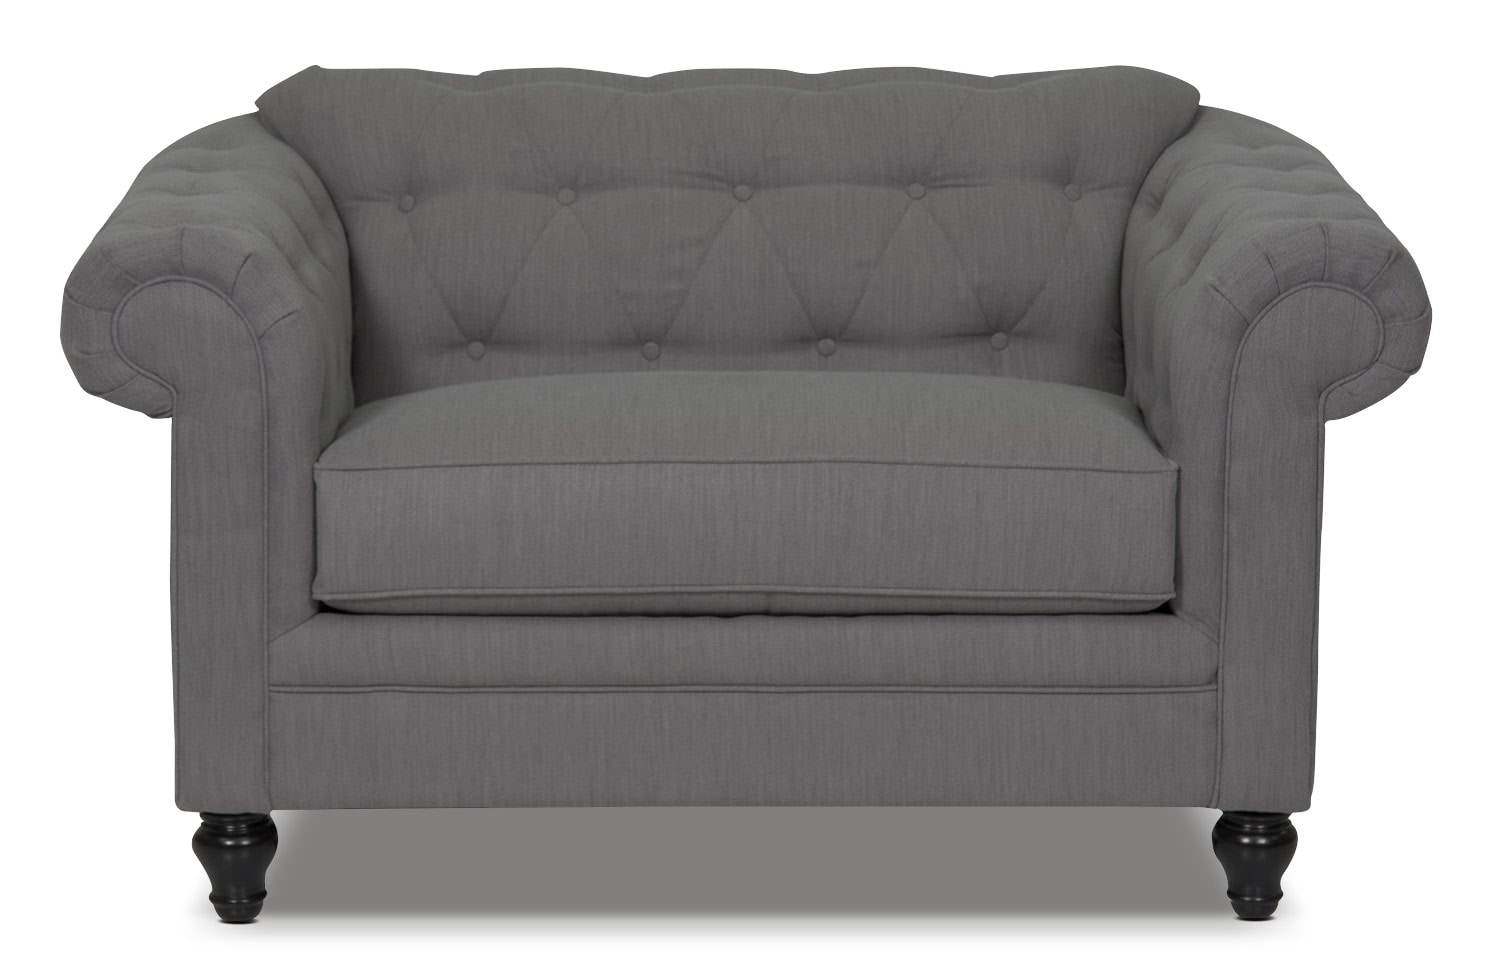 Living Room Furniture - Julia Chenille Chair-and-a-Half - Grey